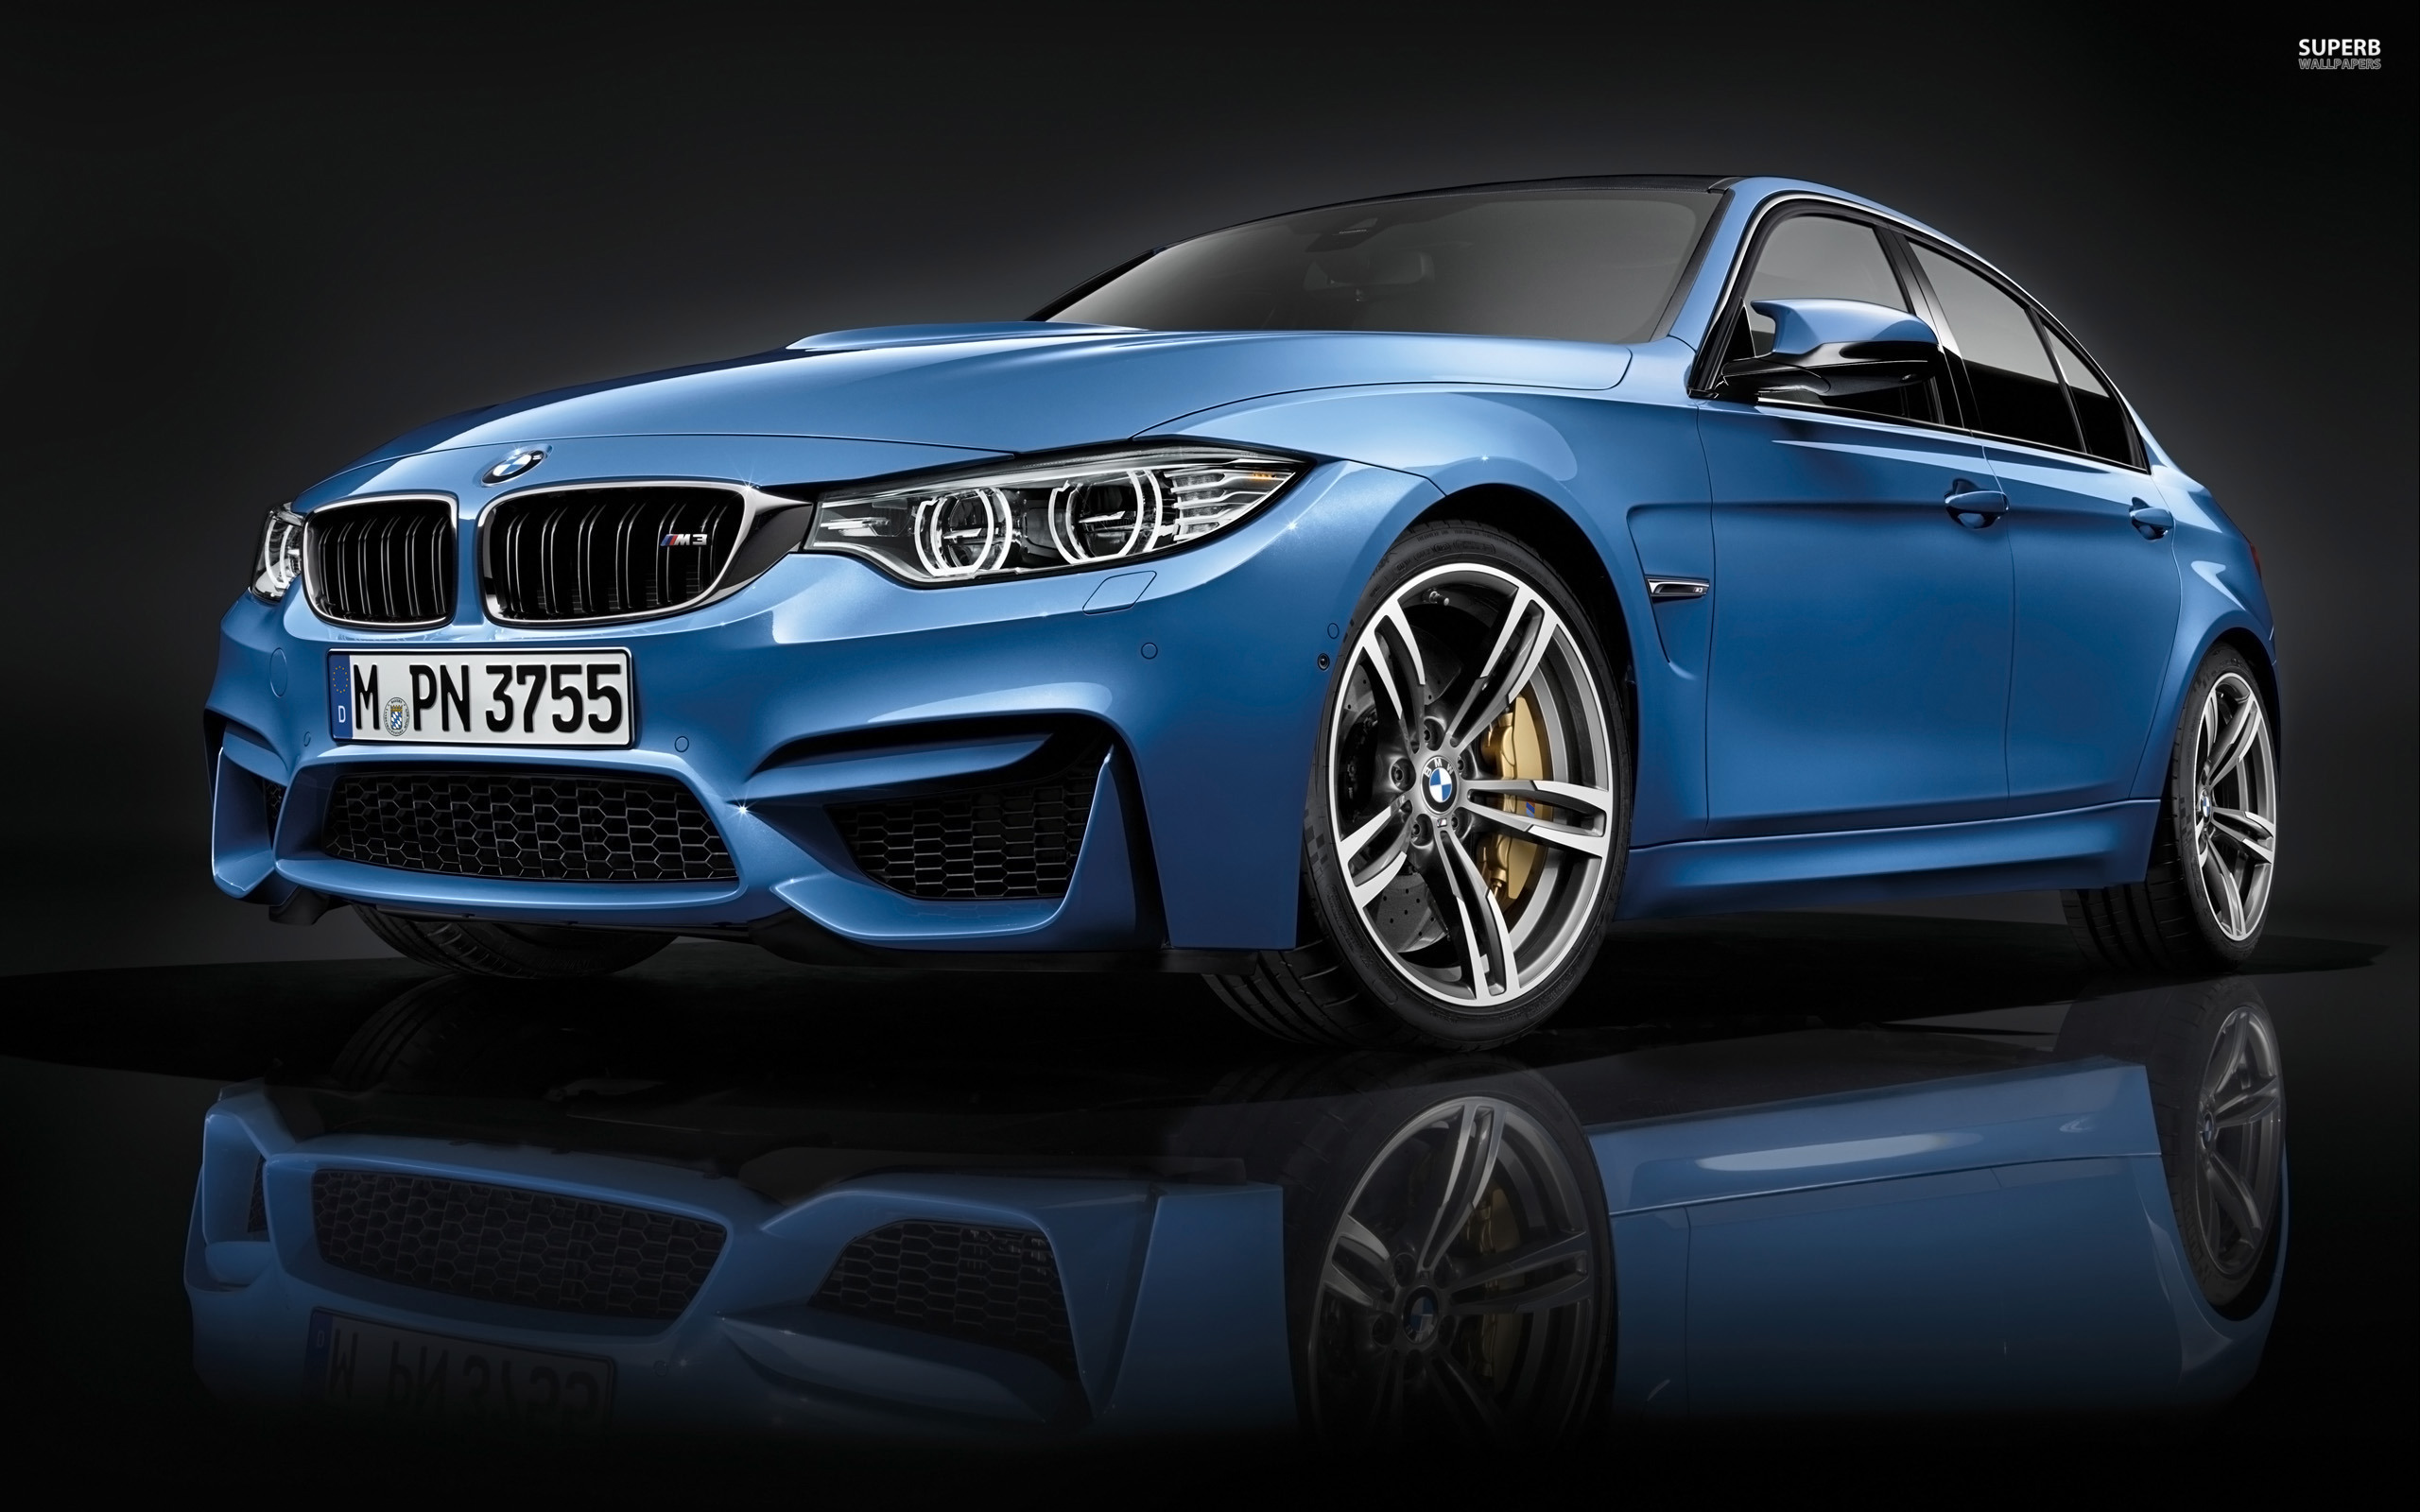 2014 BMW M3 Sedan wallpaper 2560x1600 jpg